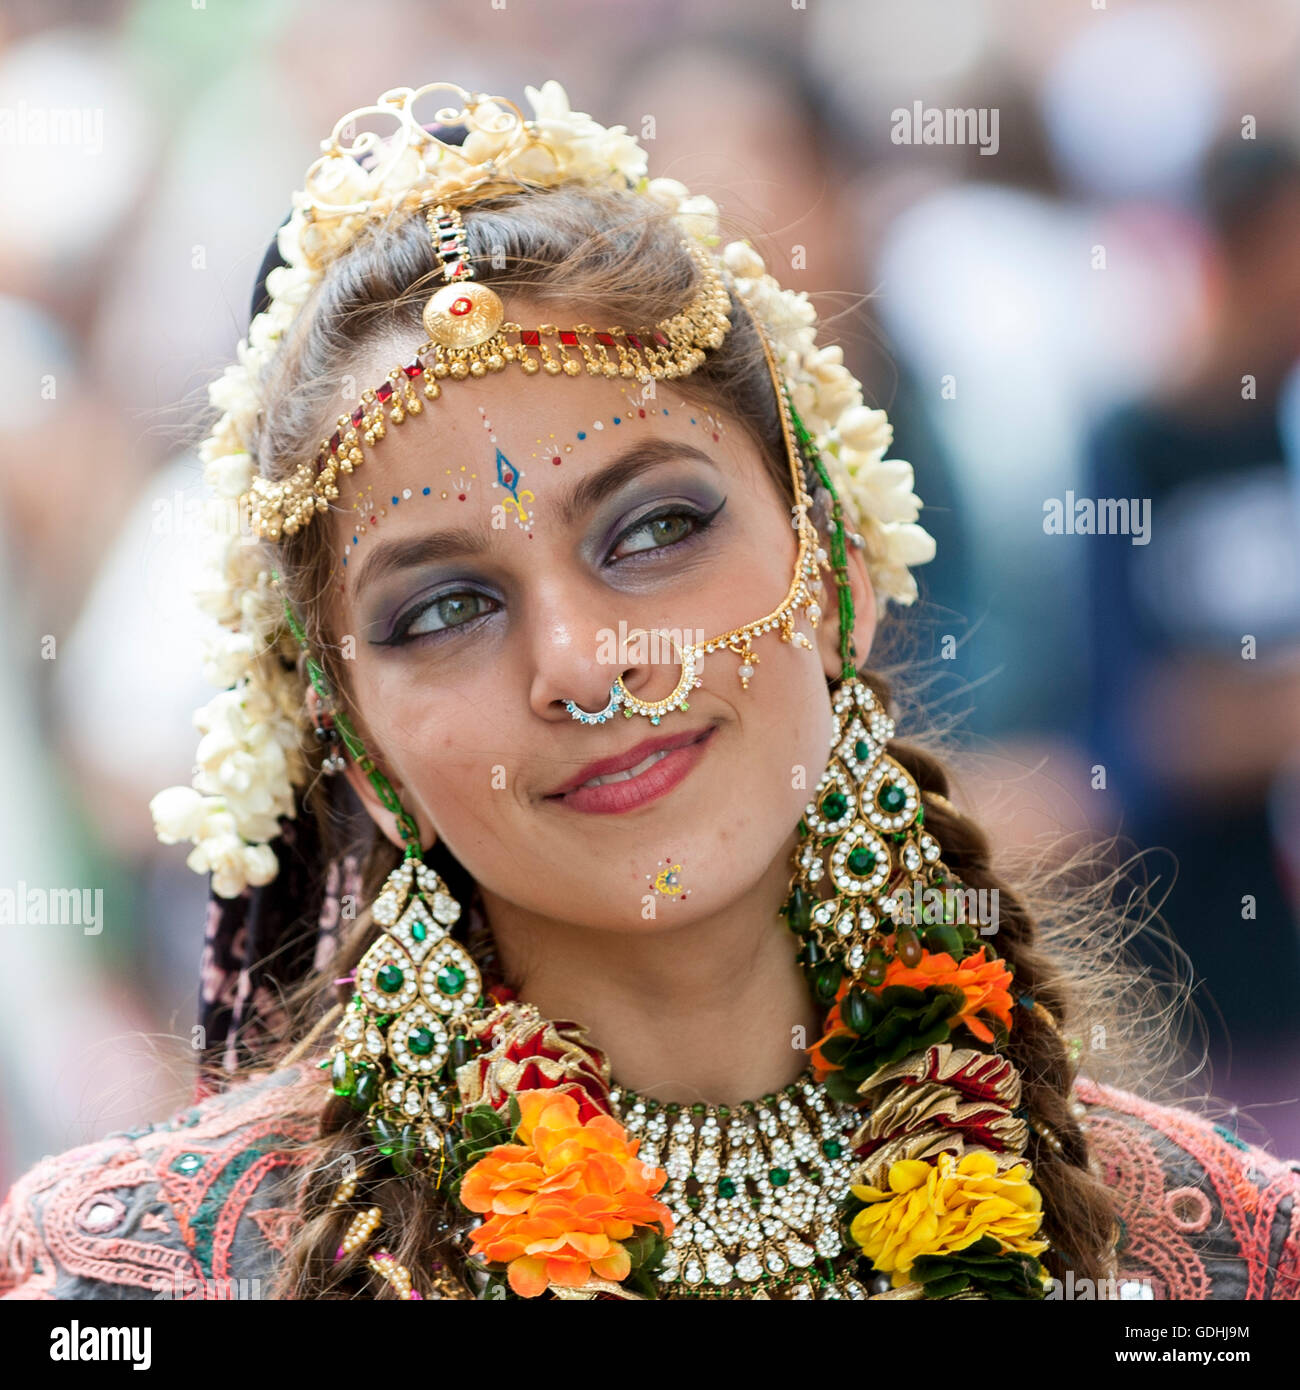 """London, UK. 17 July 2016.  A girl dressed as Lord Krishna's consort.  Devotees celebrate the annual Rathayatra festival (""""cart festival""""), in central London.  Hare Krishna followers towed three huge decorated carts from Hyde Park corner to Trafalgar Square, singing and dancing all the way. Credit:  Stephen Chung / Alamy Live News Stock Photo"""